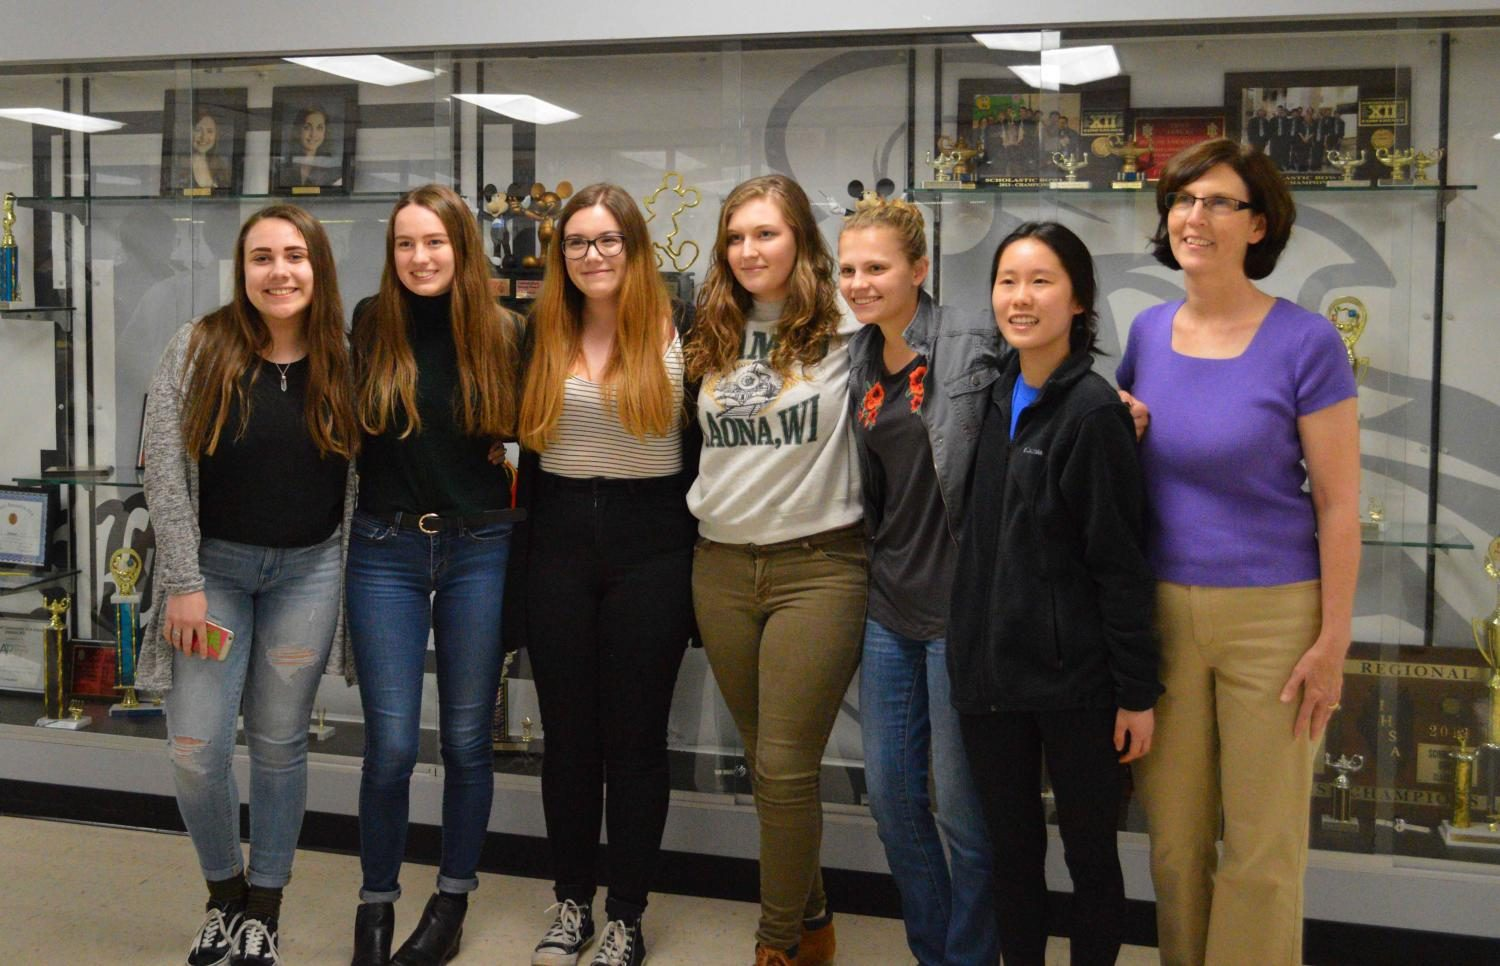 For the first time, the Kaneland Krier will have six students competing in the state competition which will be held Friday April 28.